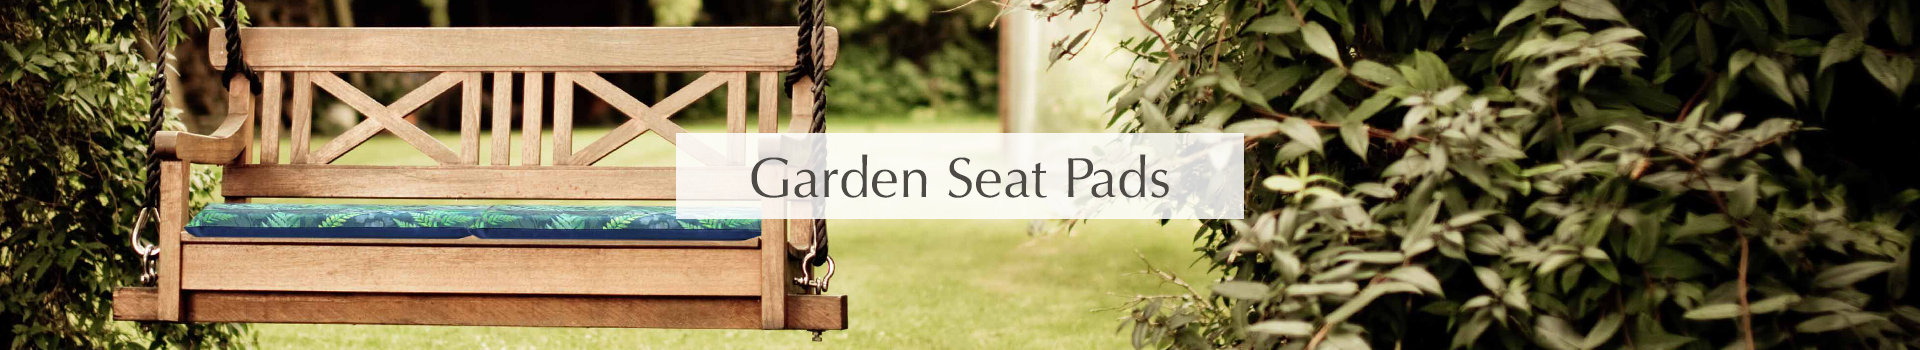 garden-seat-pads-2.png